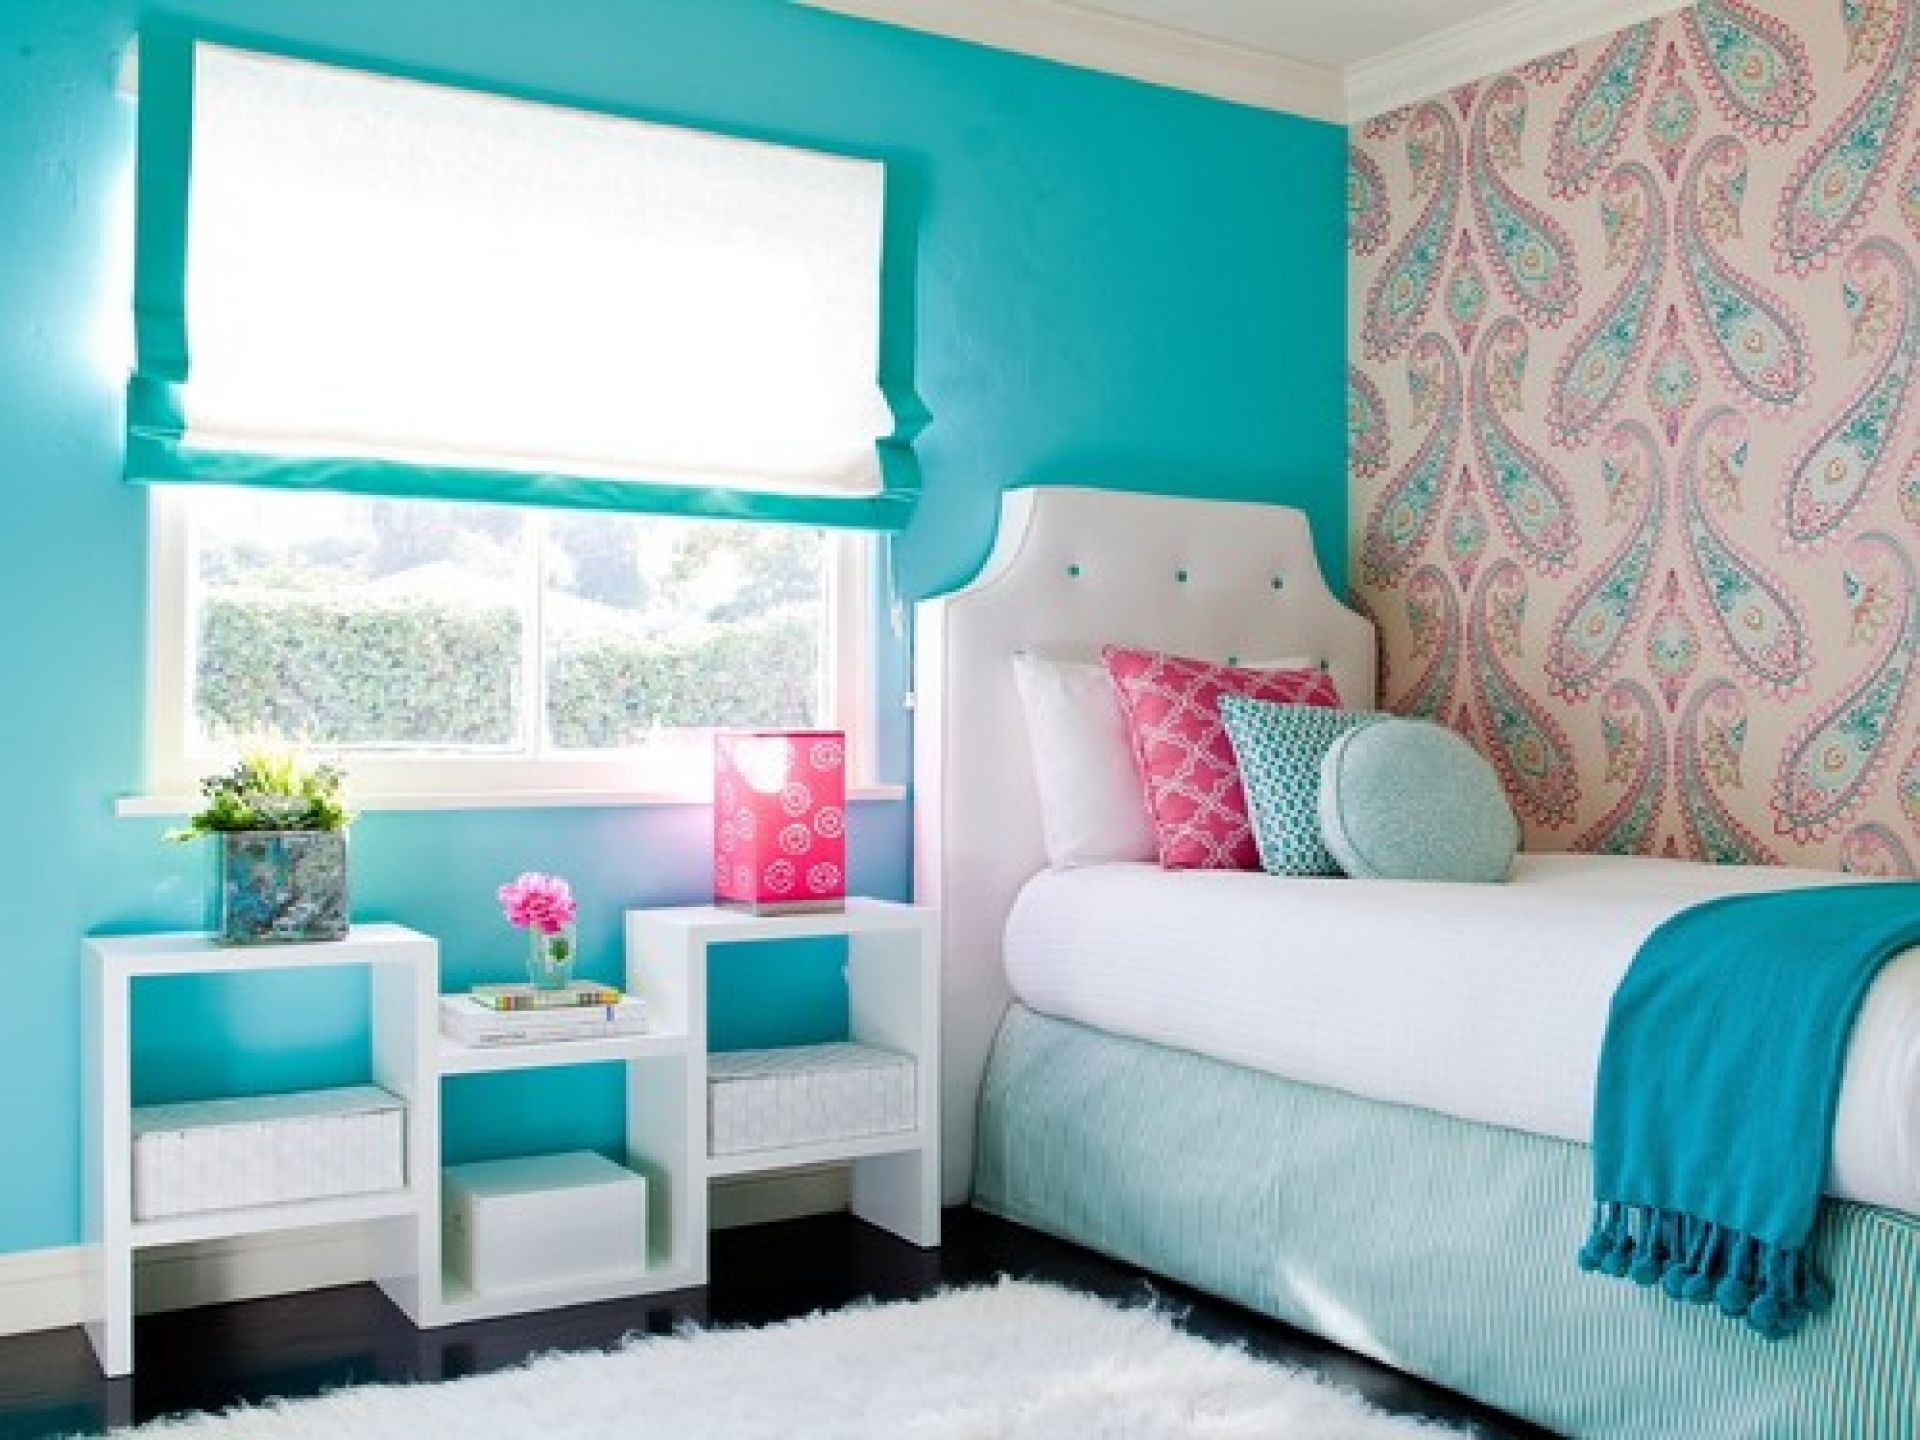 Simple design comfy room colors teenage girl bedroom wall paint ideas colors for bedrooms for teenage girls ideas